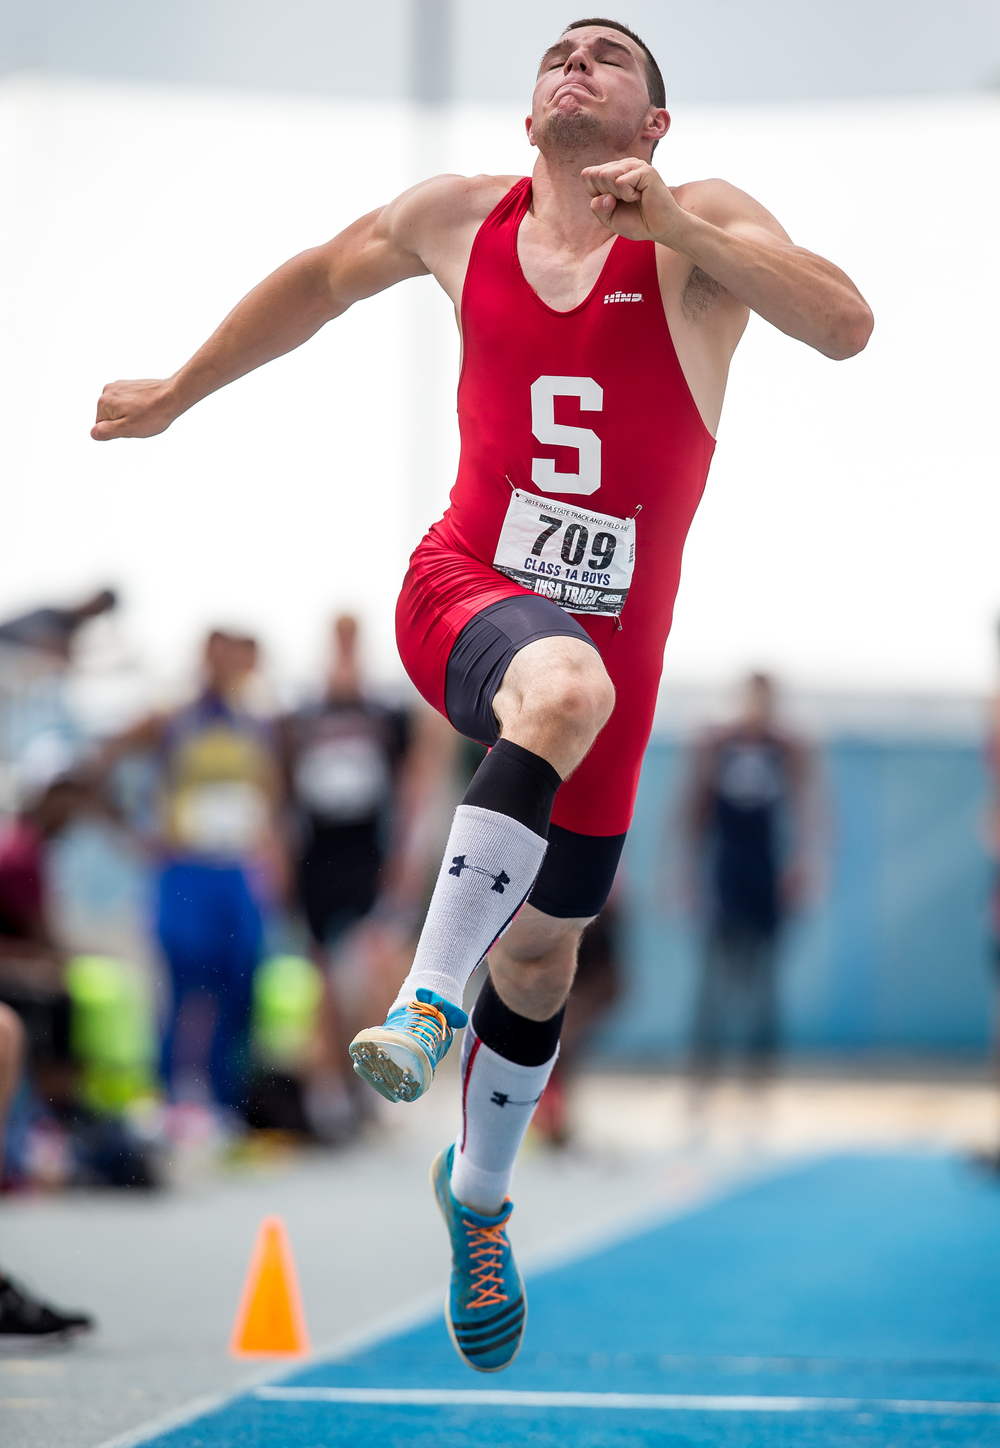 Staunton's Marcus Sitko launches in to the air on his way to jumping 46-02.25 to win the Class 1A Triple Jump during the IHSA Boys Track and Field State Finals at O'Brien Stadium, Saturday, May 30, 2015, in Charleston, Ill. Justin L. Fowler/The State Journal-Register